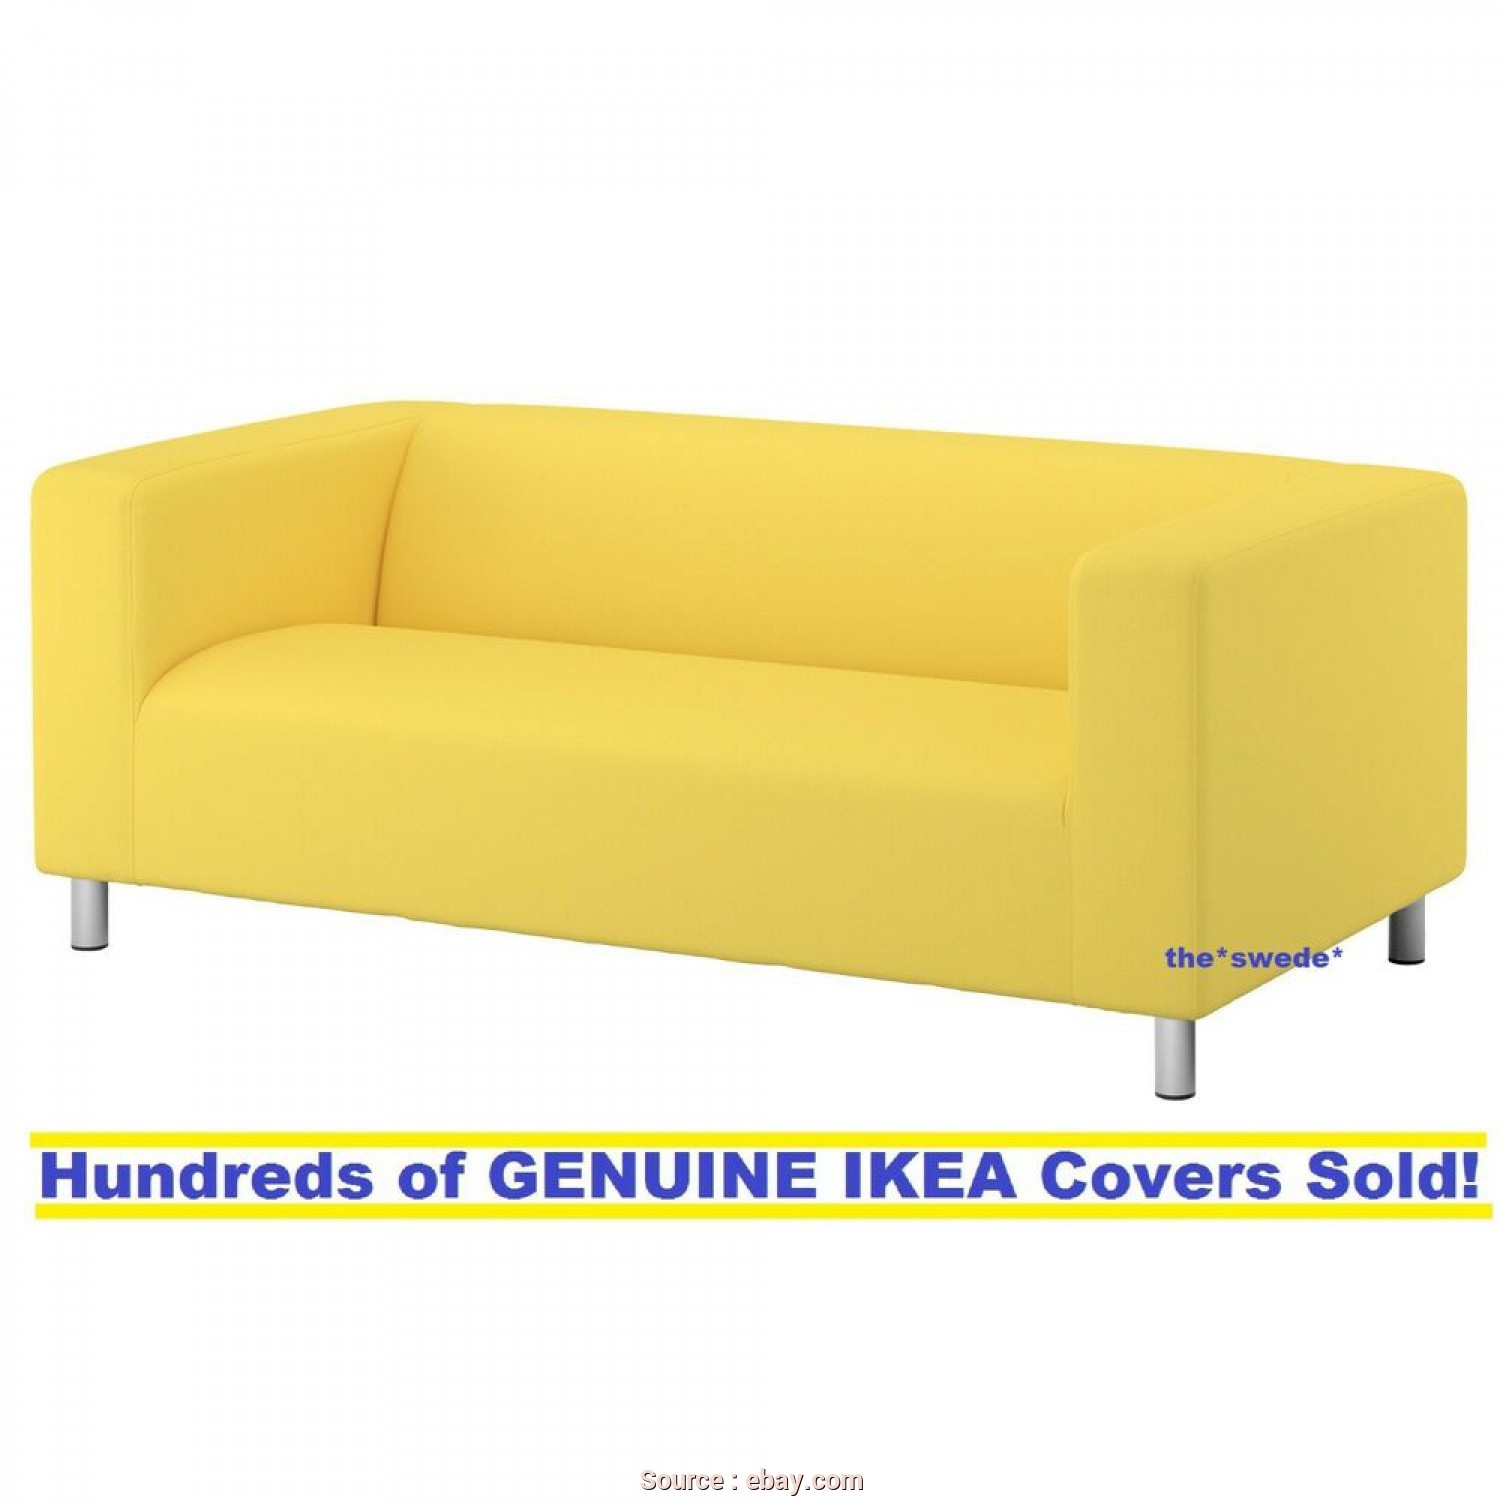 Ikea Klippan Sofa Covers Yellow, Bellissimo Details About Ikea KLIPPAN Loveseat (2 Seat Sofa) Cover Slipcover VISSLE YELLOW, SEALED!